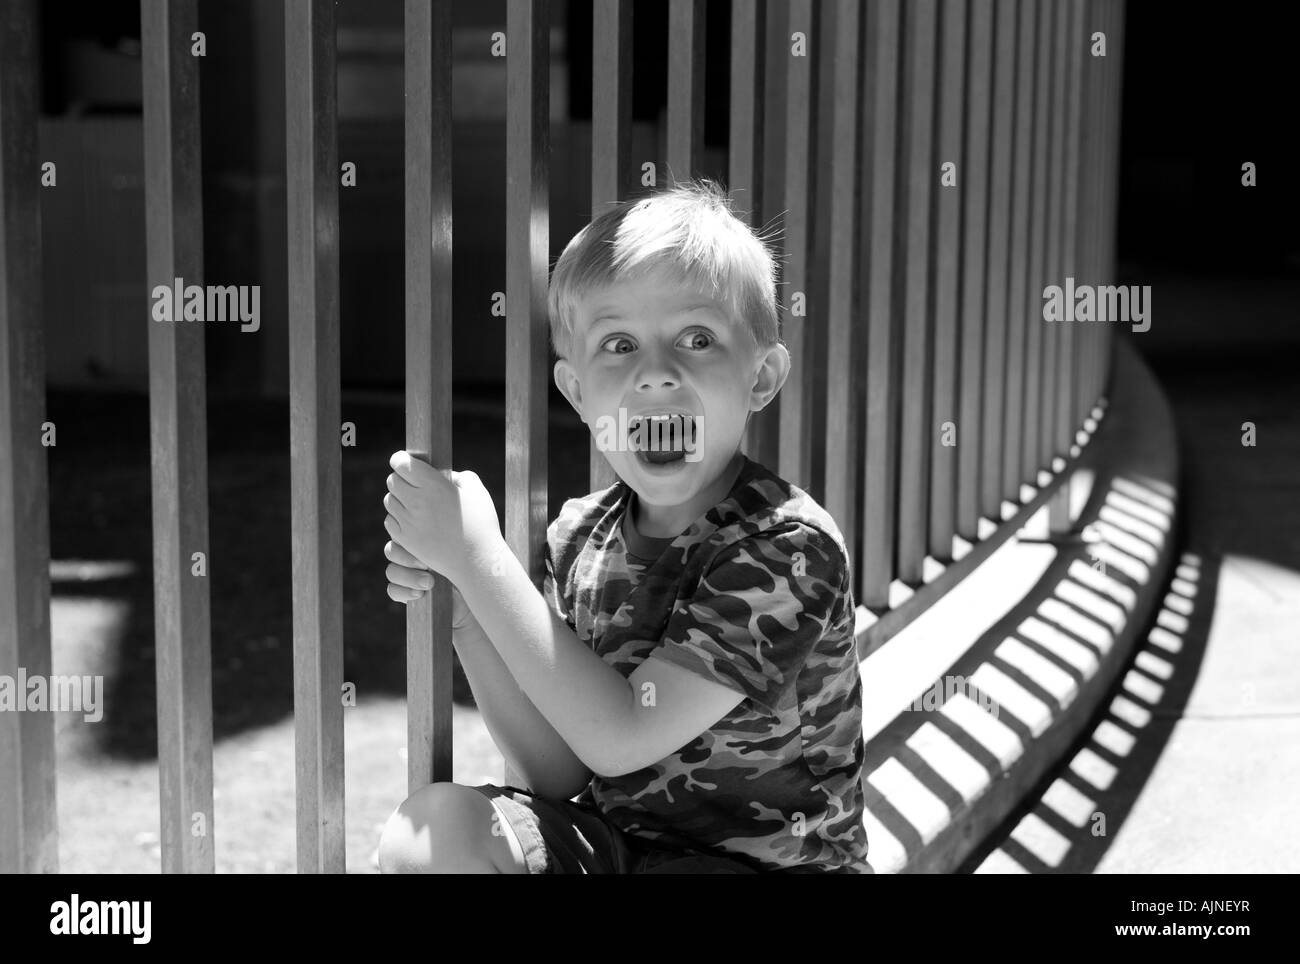 Child looking excited at a Zoo as he sees animals - Stock Image